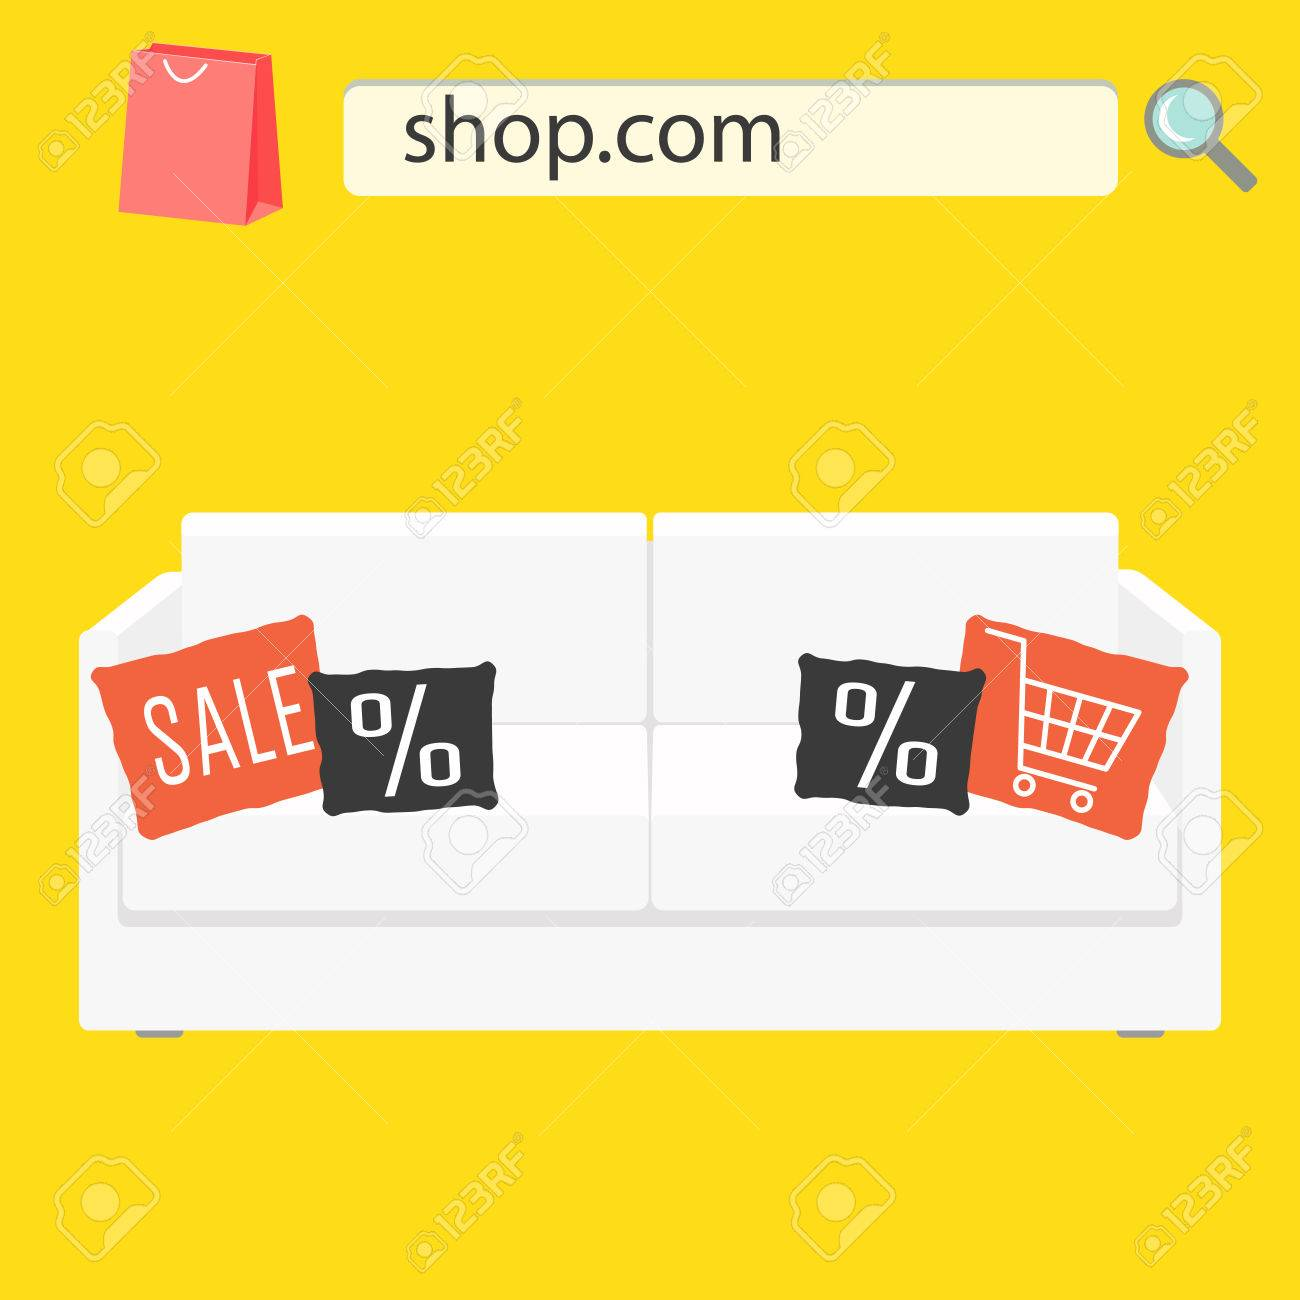 Online shop sale banner with white sofa and pillows  Furniture shop advert  flyer  Stock. Online Shop Sale Banner With White Sofa And Pillows  Furniture